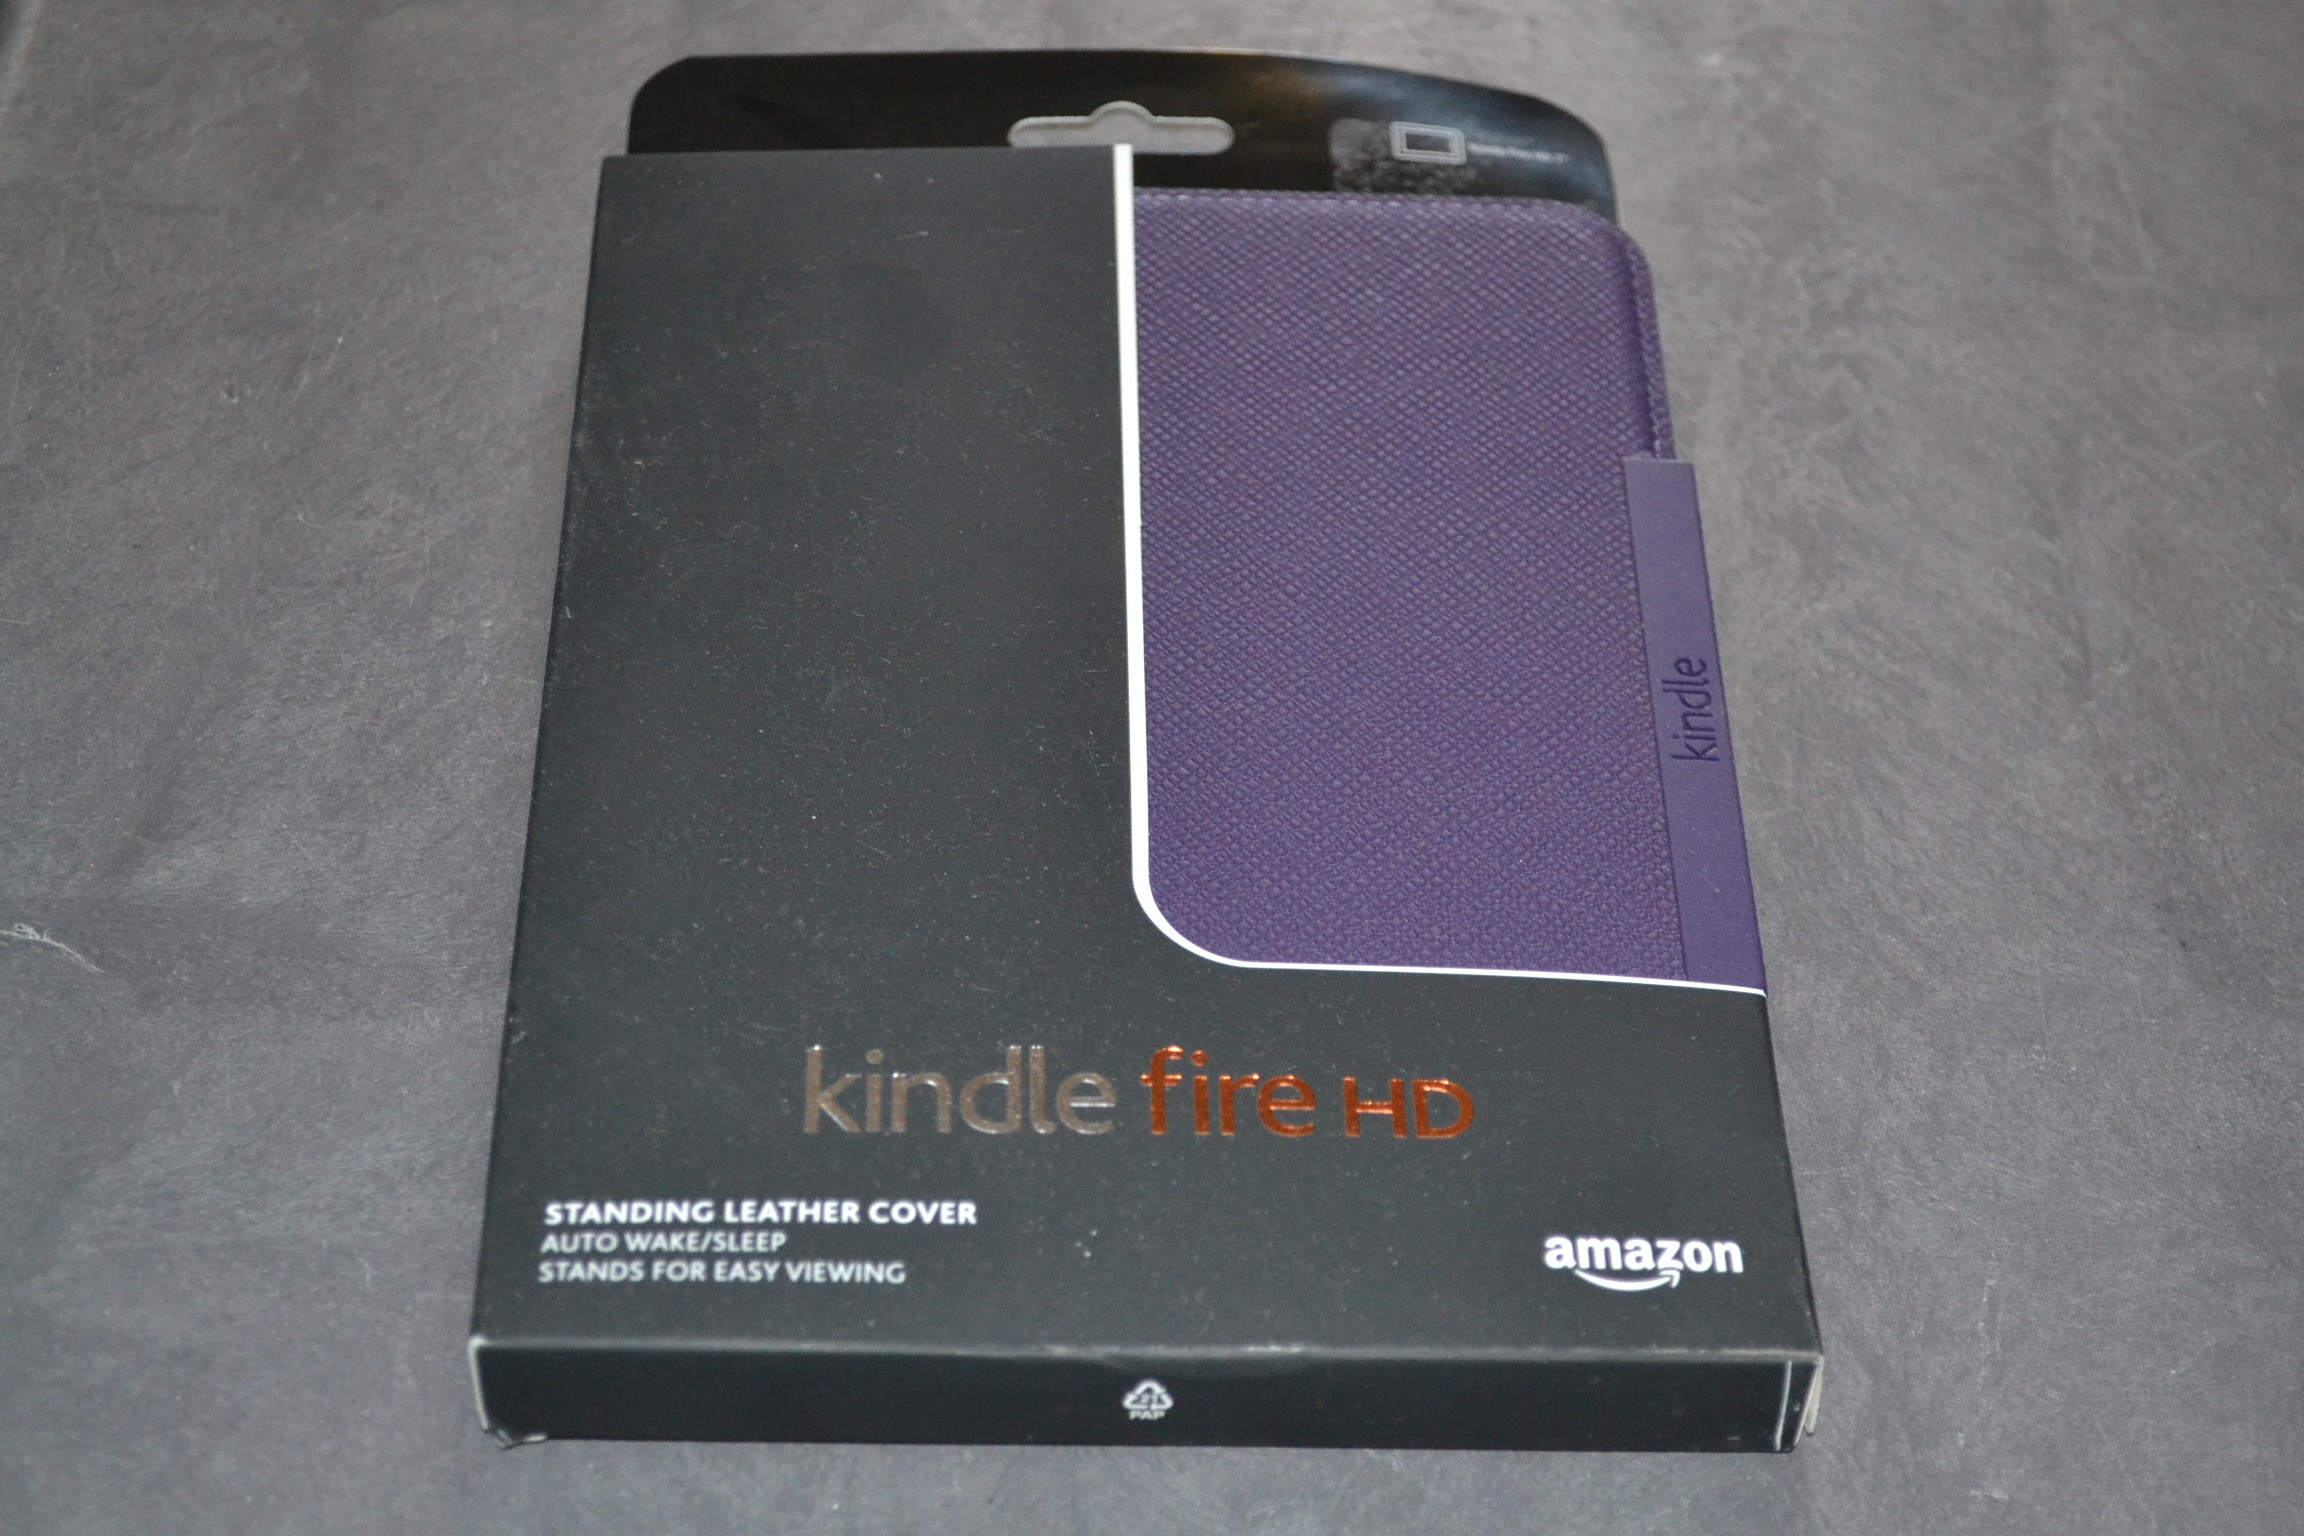 Amazon Kindle Fire HD 7 Standing Leather Case Royal Purple Will Only